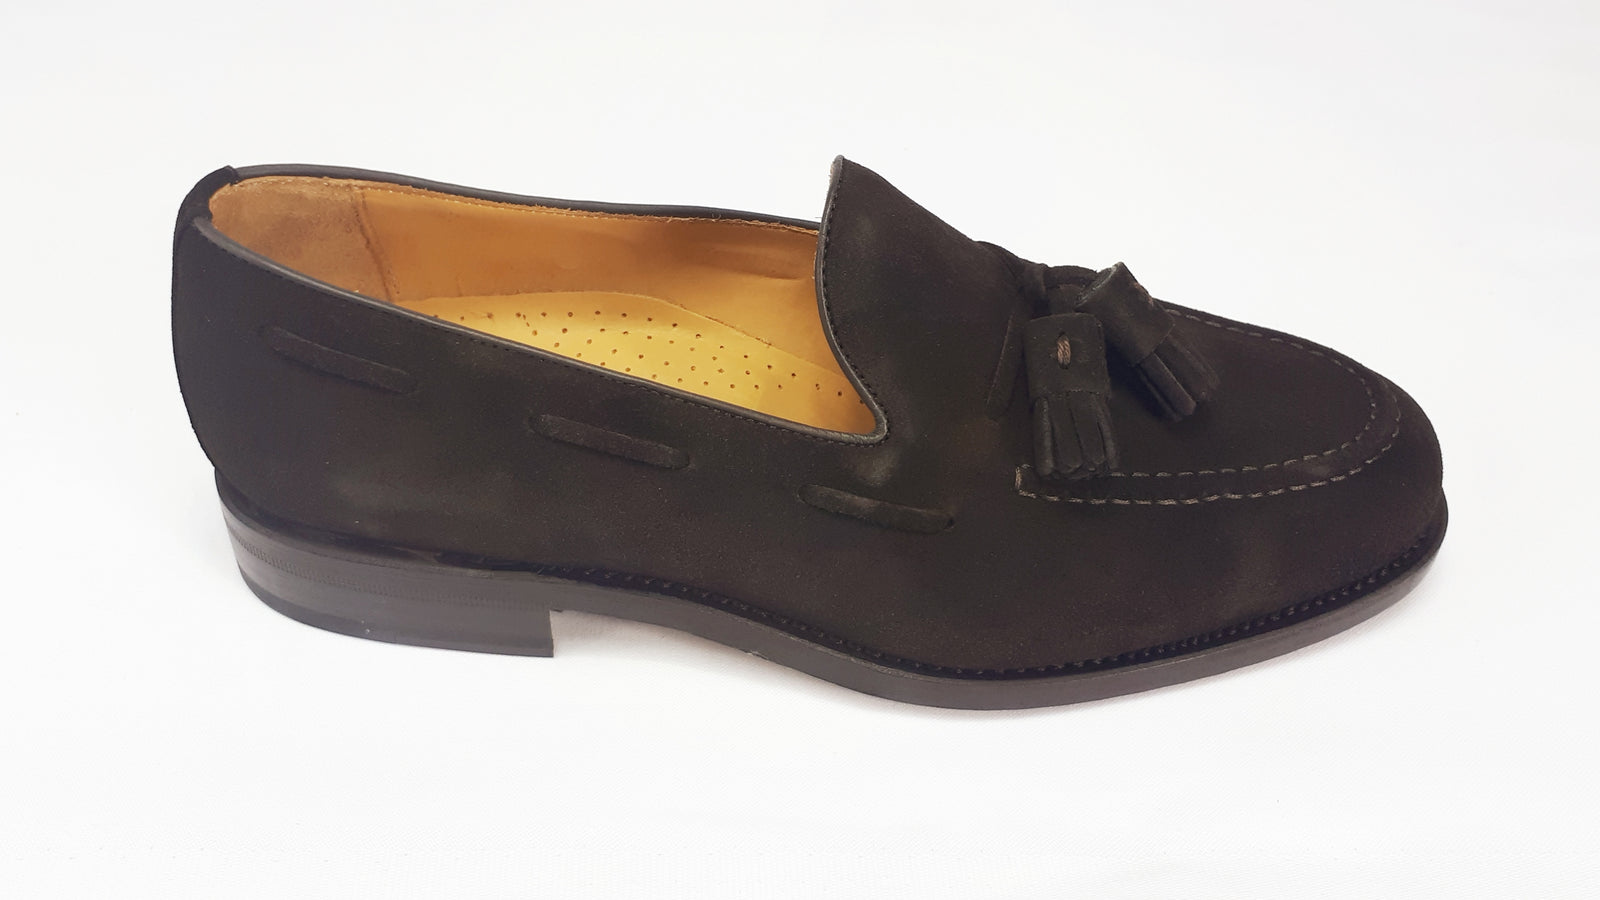 Berwick 8491 Tassel Moccasin - Chocolate